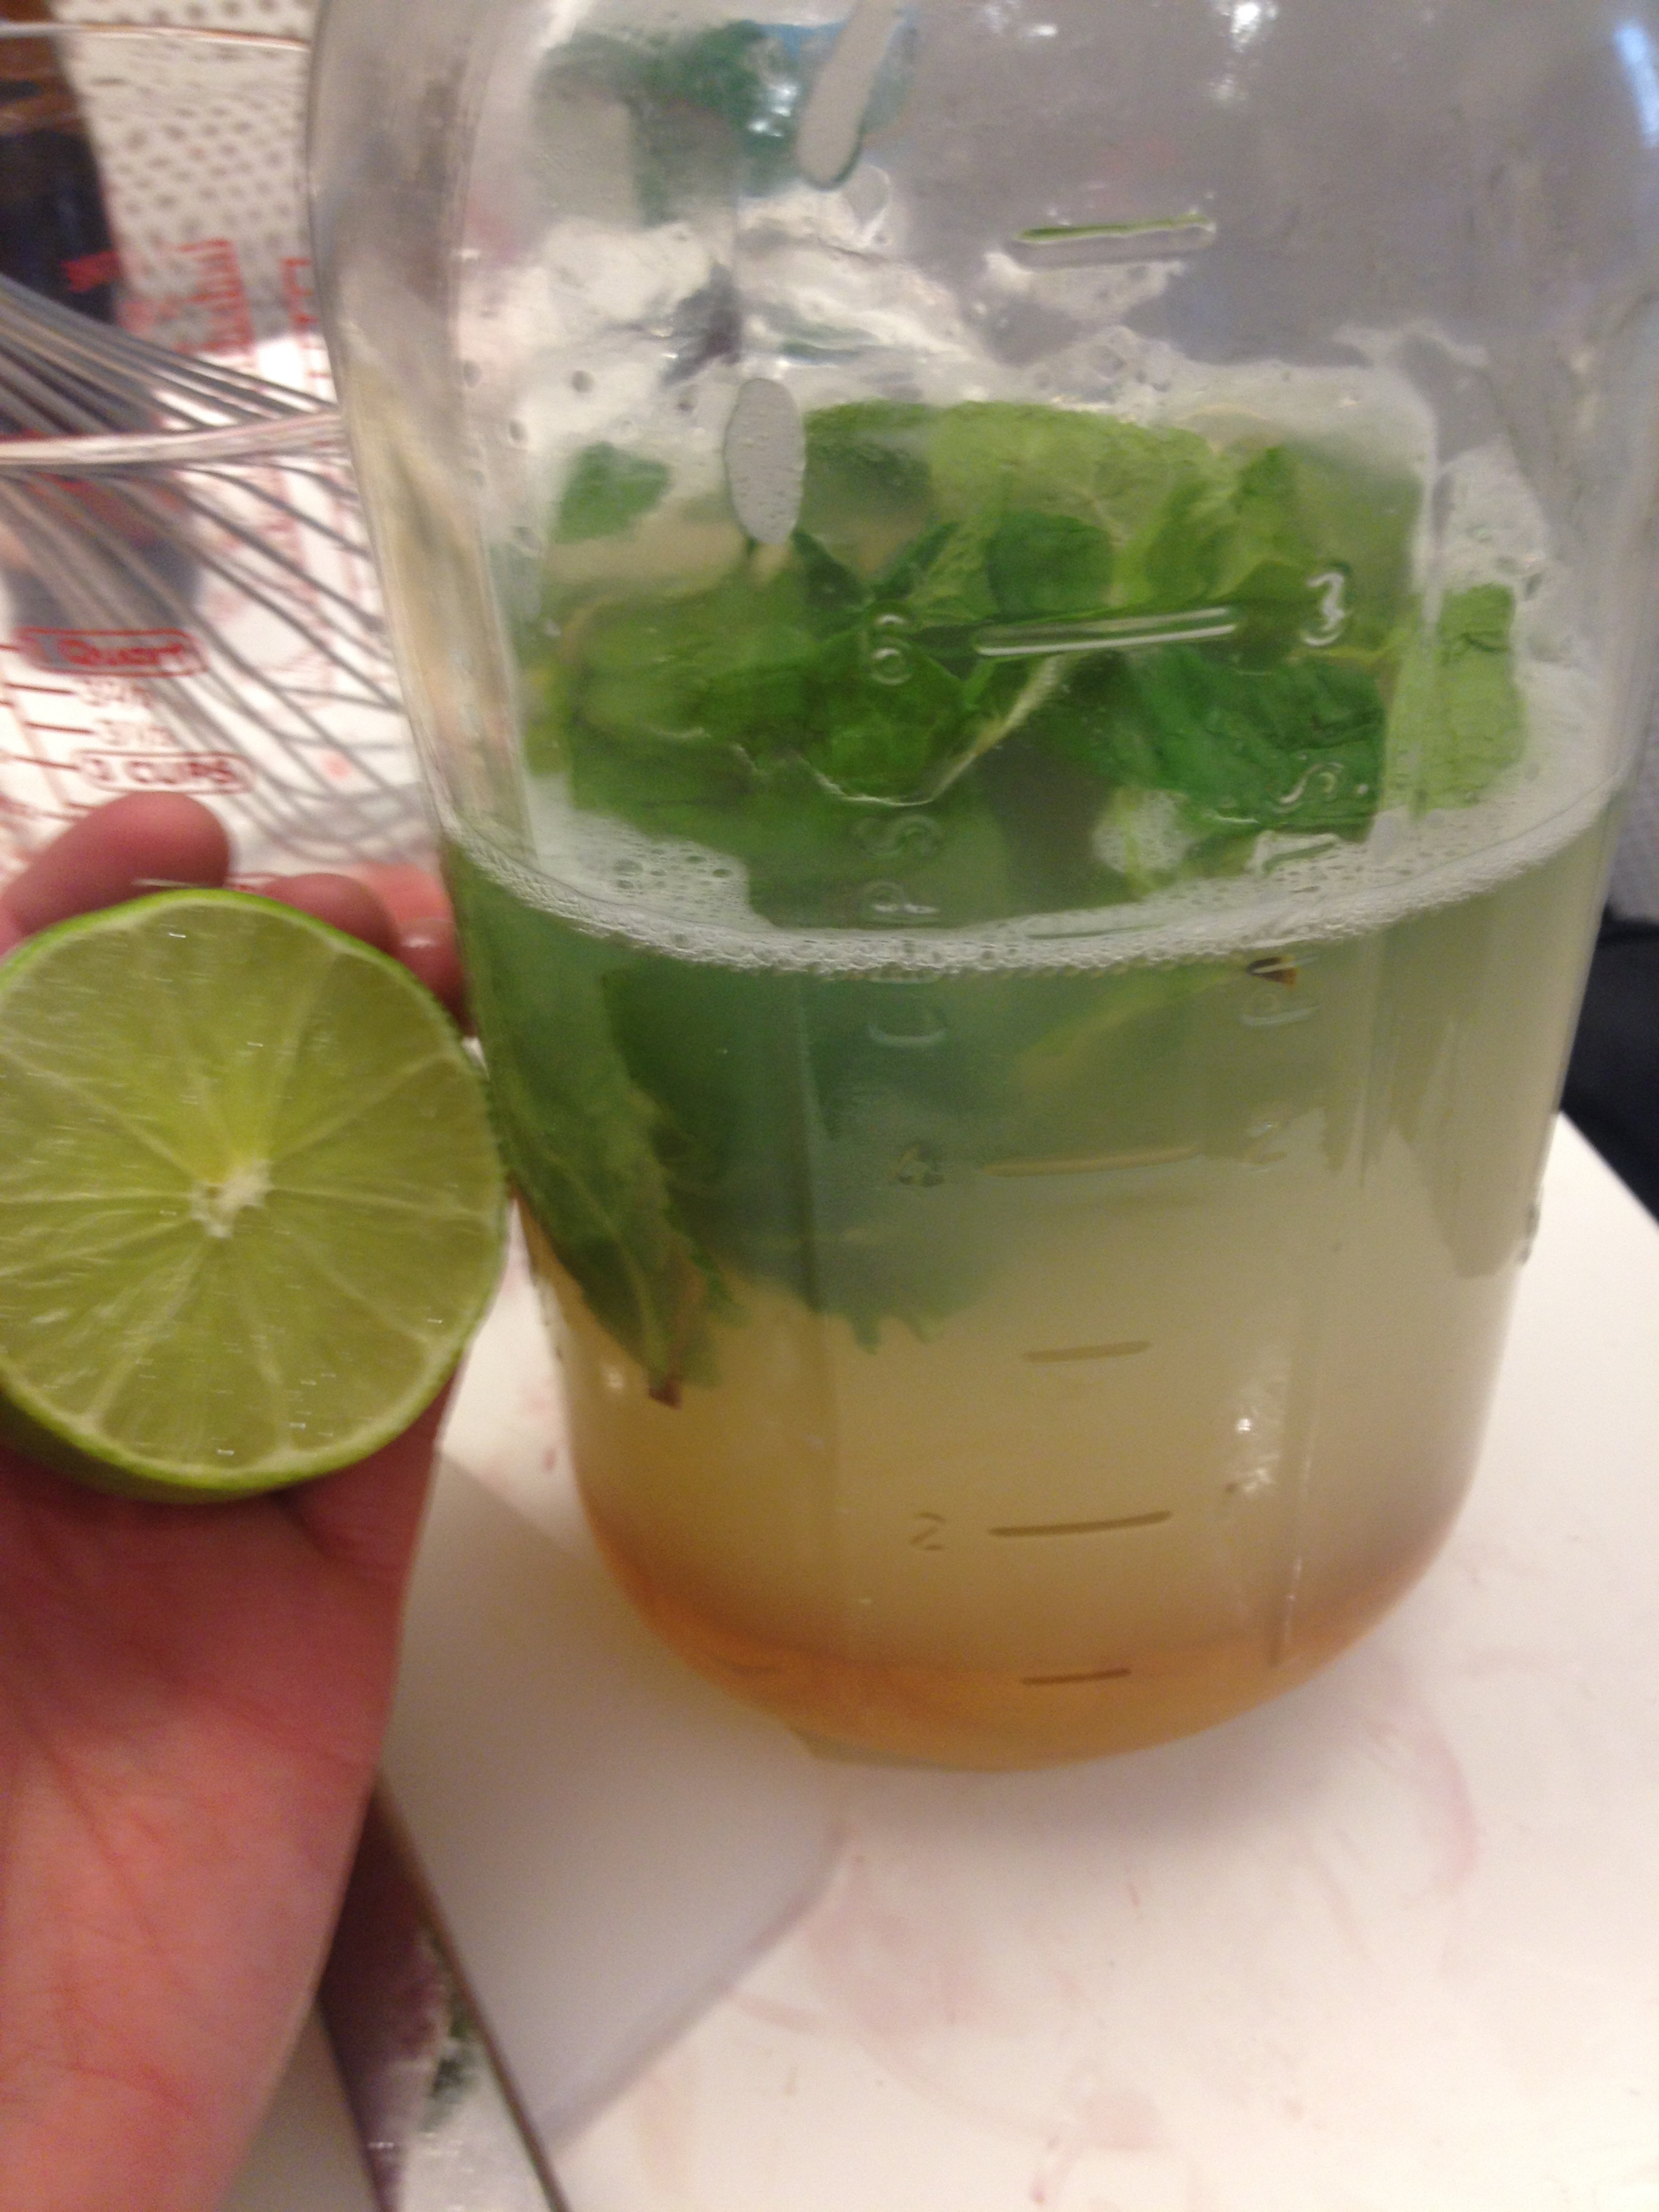 Pre-batching the Number 81 (gin drink). Notice how all of the ingredients separate into layers based on density! Honey on the bottom, gin in the middle, fresh pressed lime juice at the top along with the fresh mint.